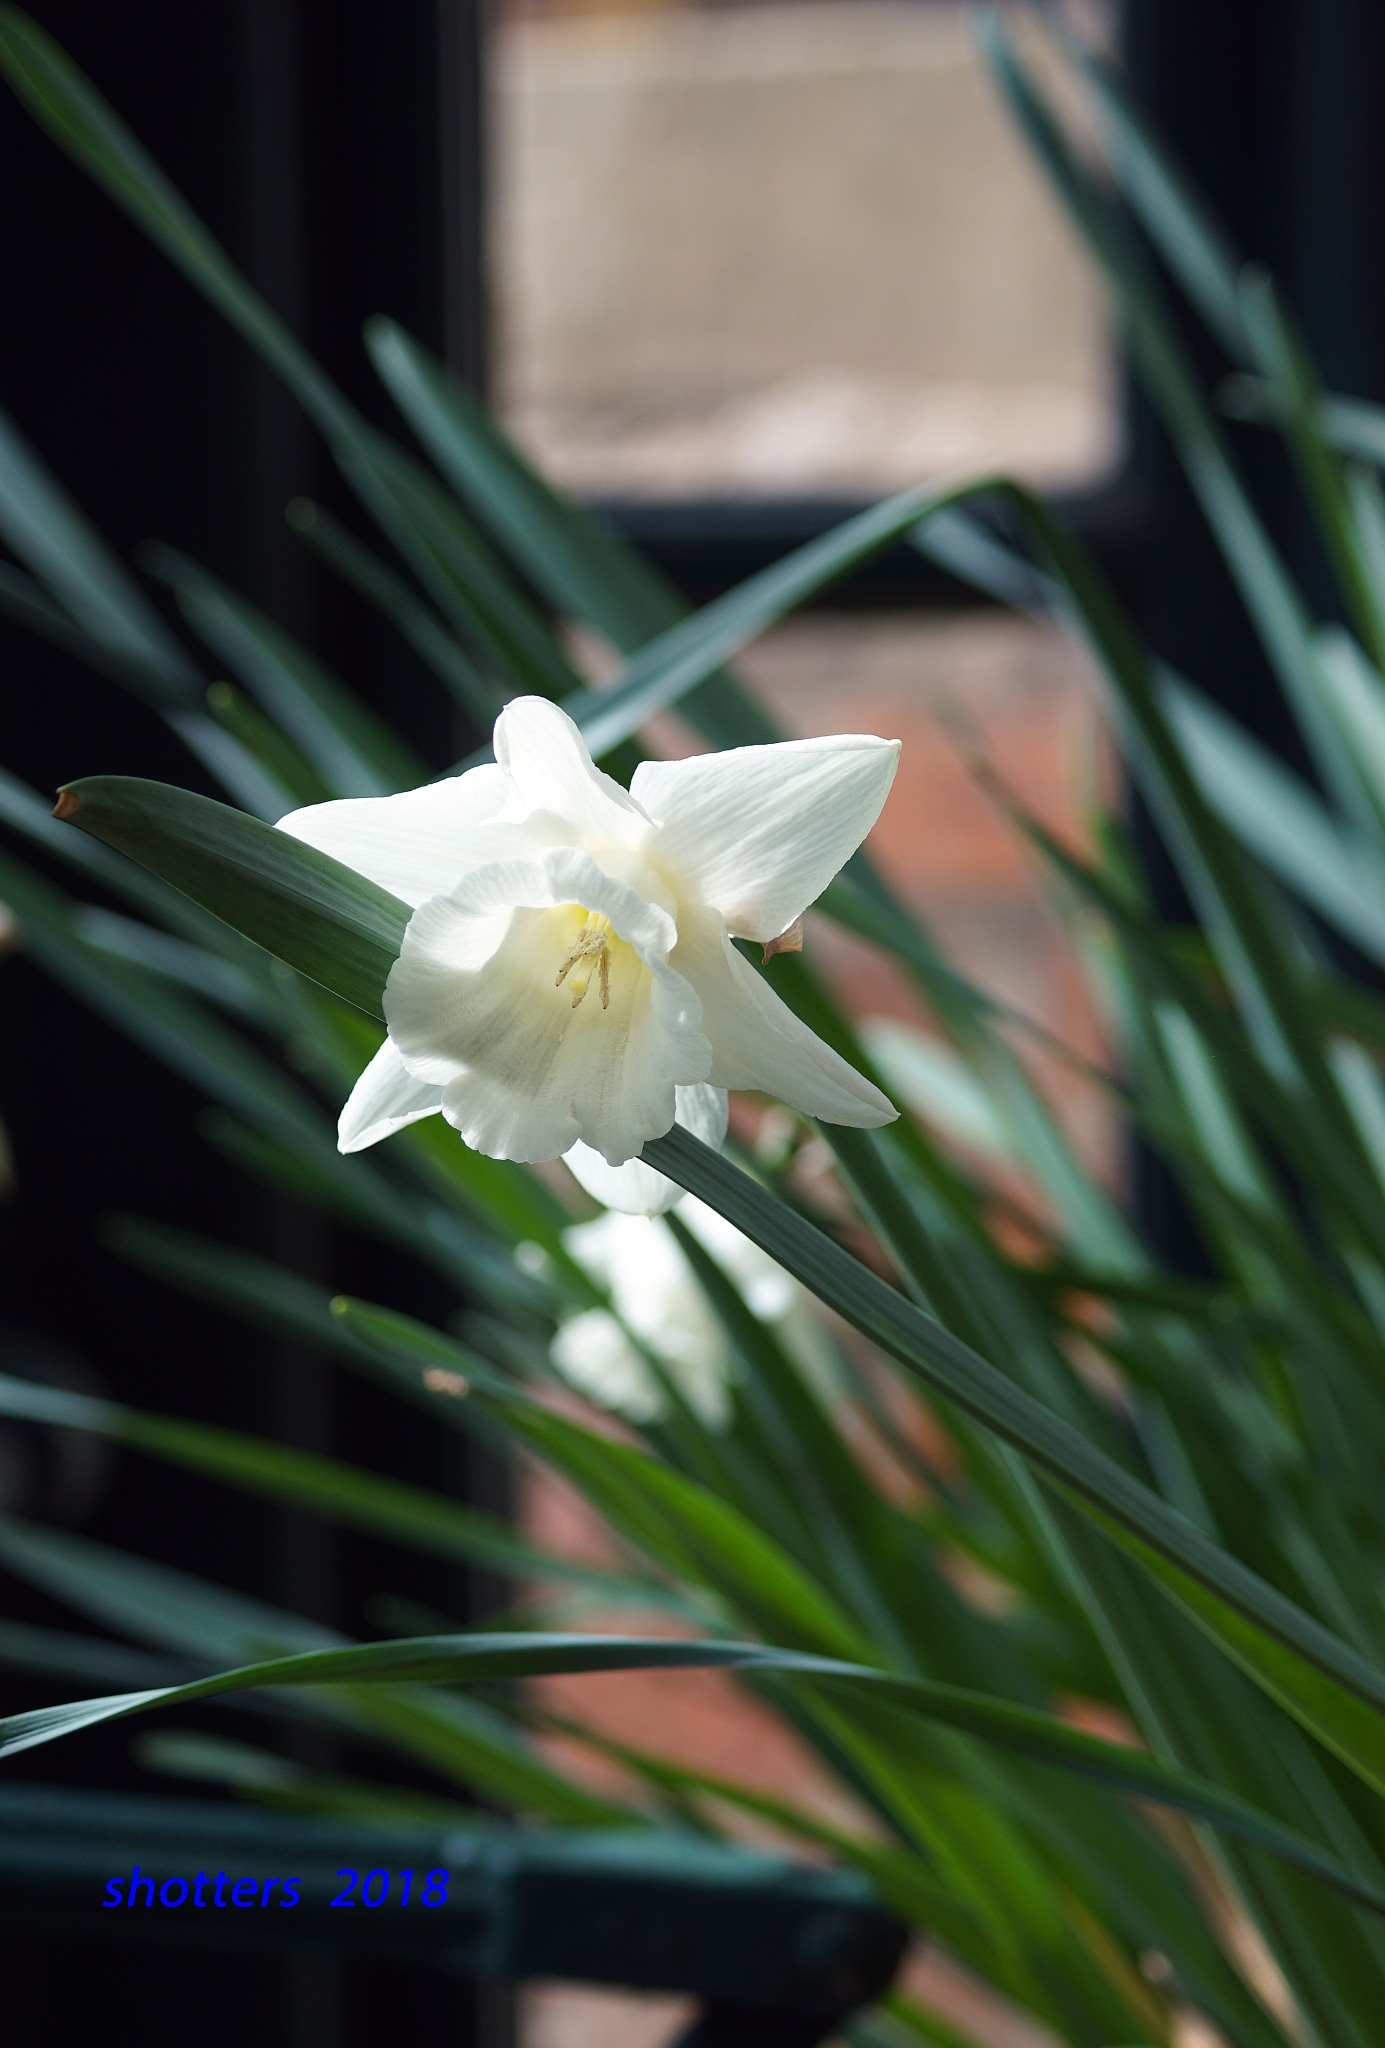 WHITE DAFF by shotters